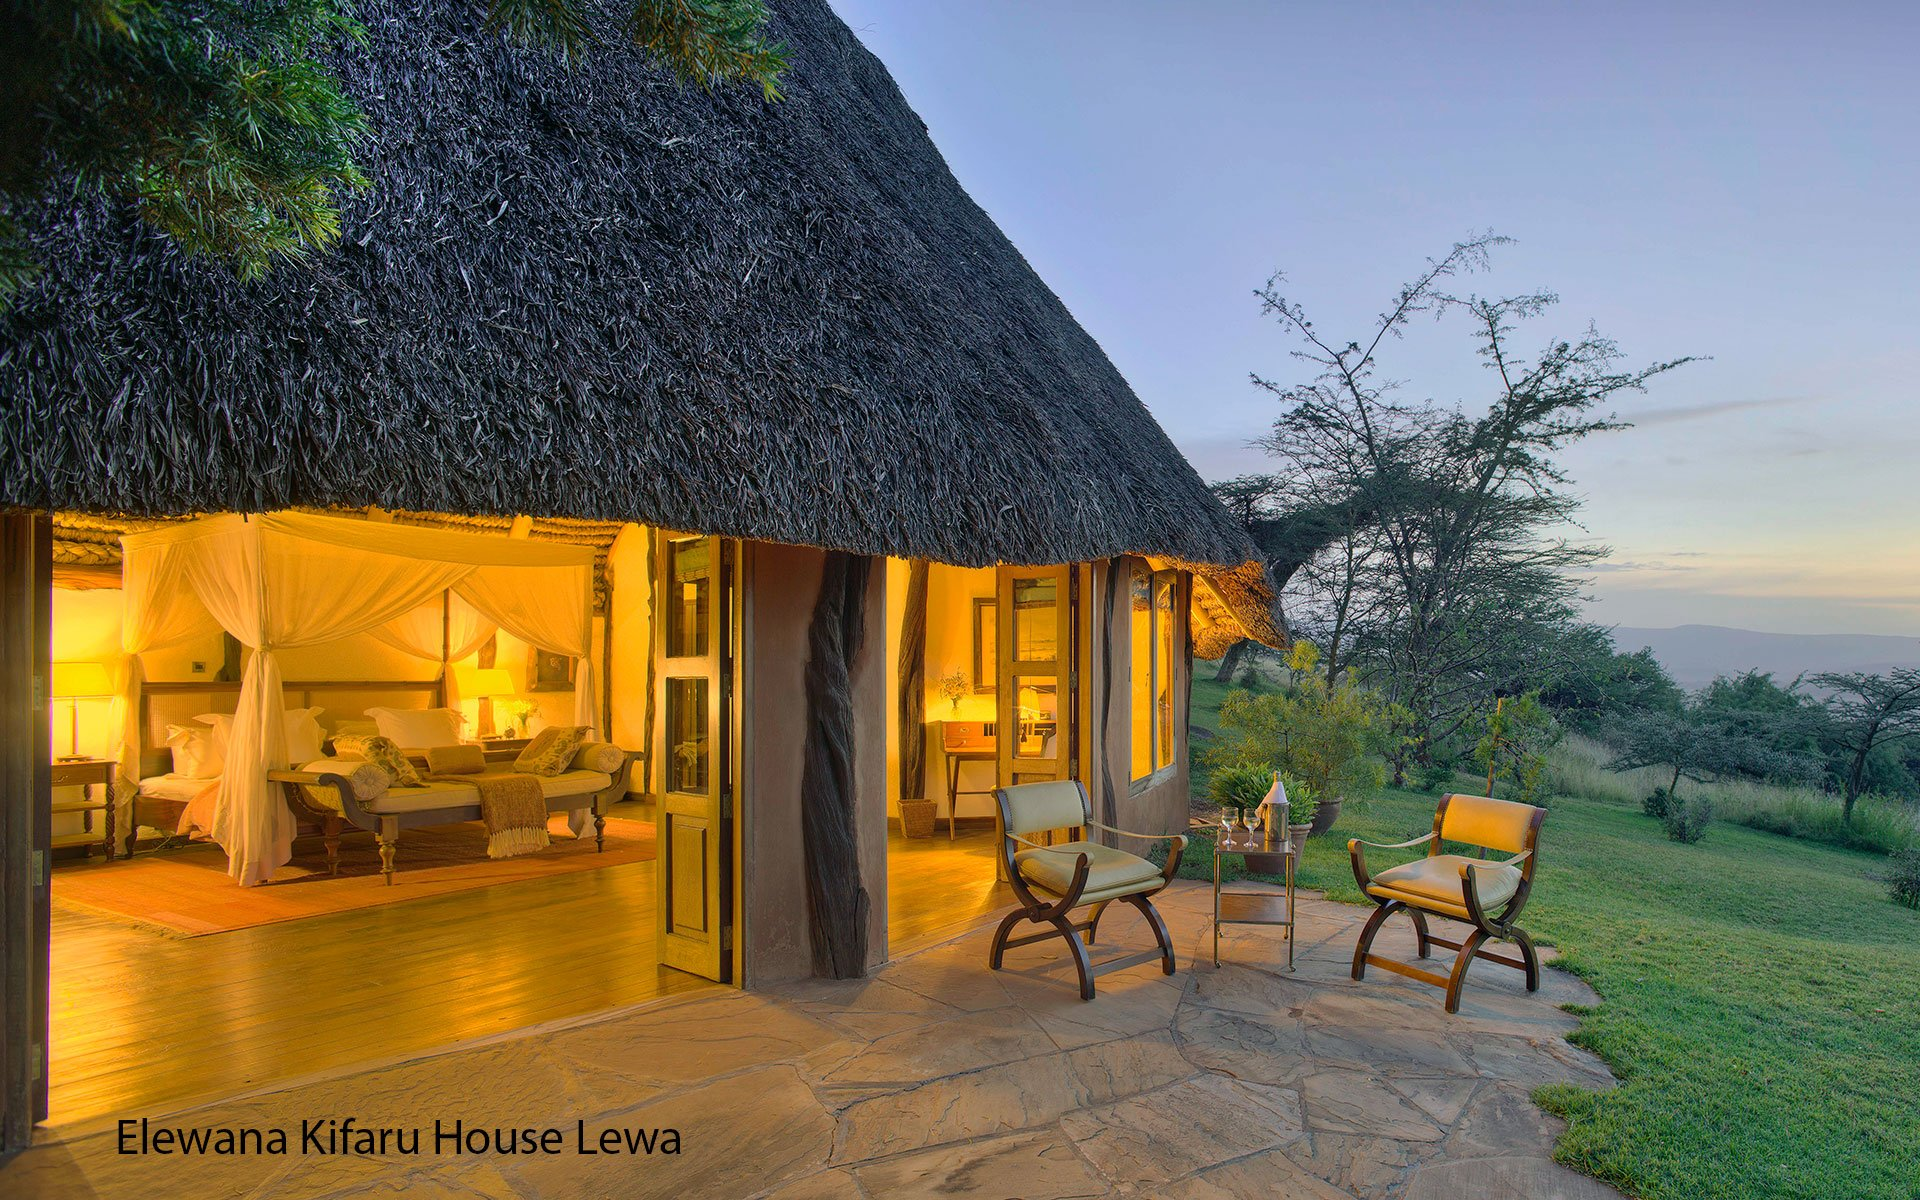 There are a number of accommodation options you can explore while travelling in Kenya. These 6 are by far the most popular.